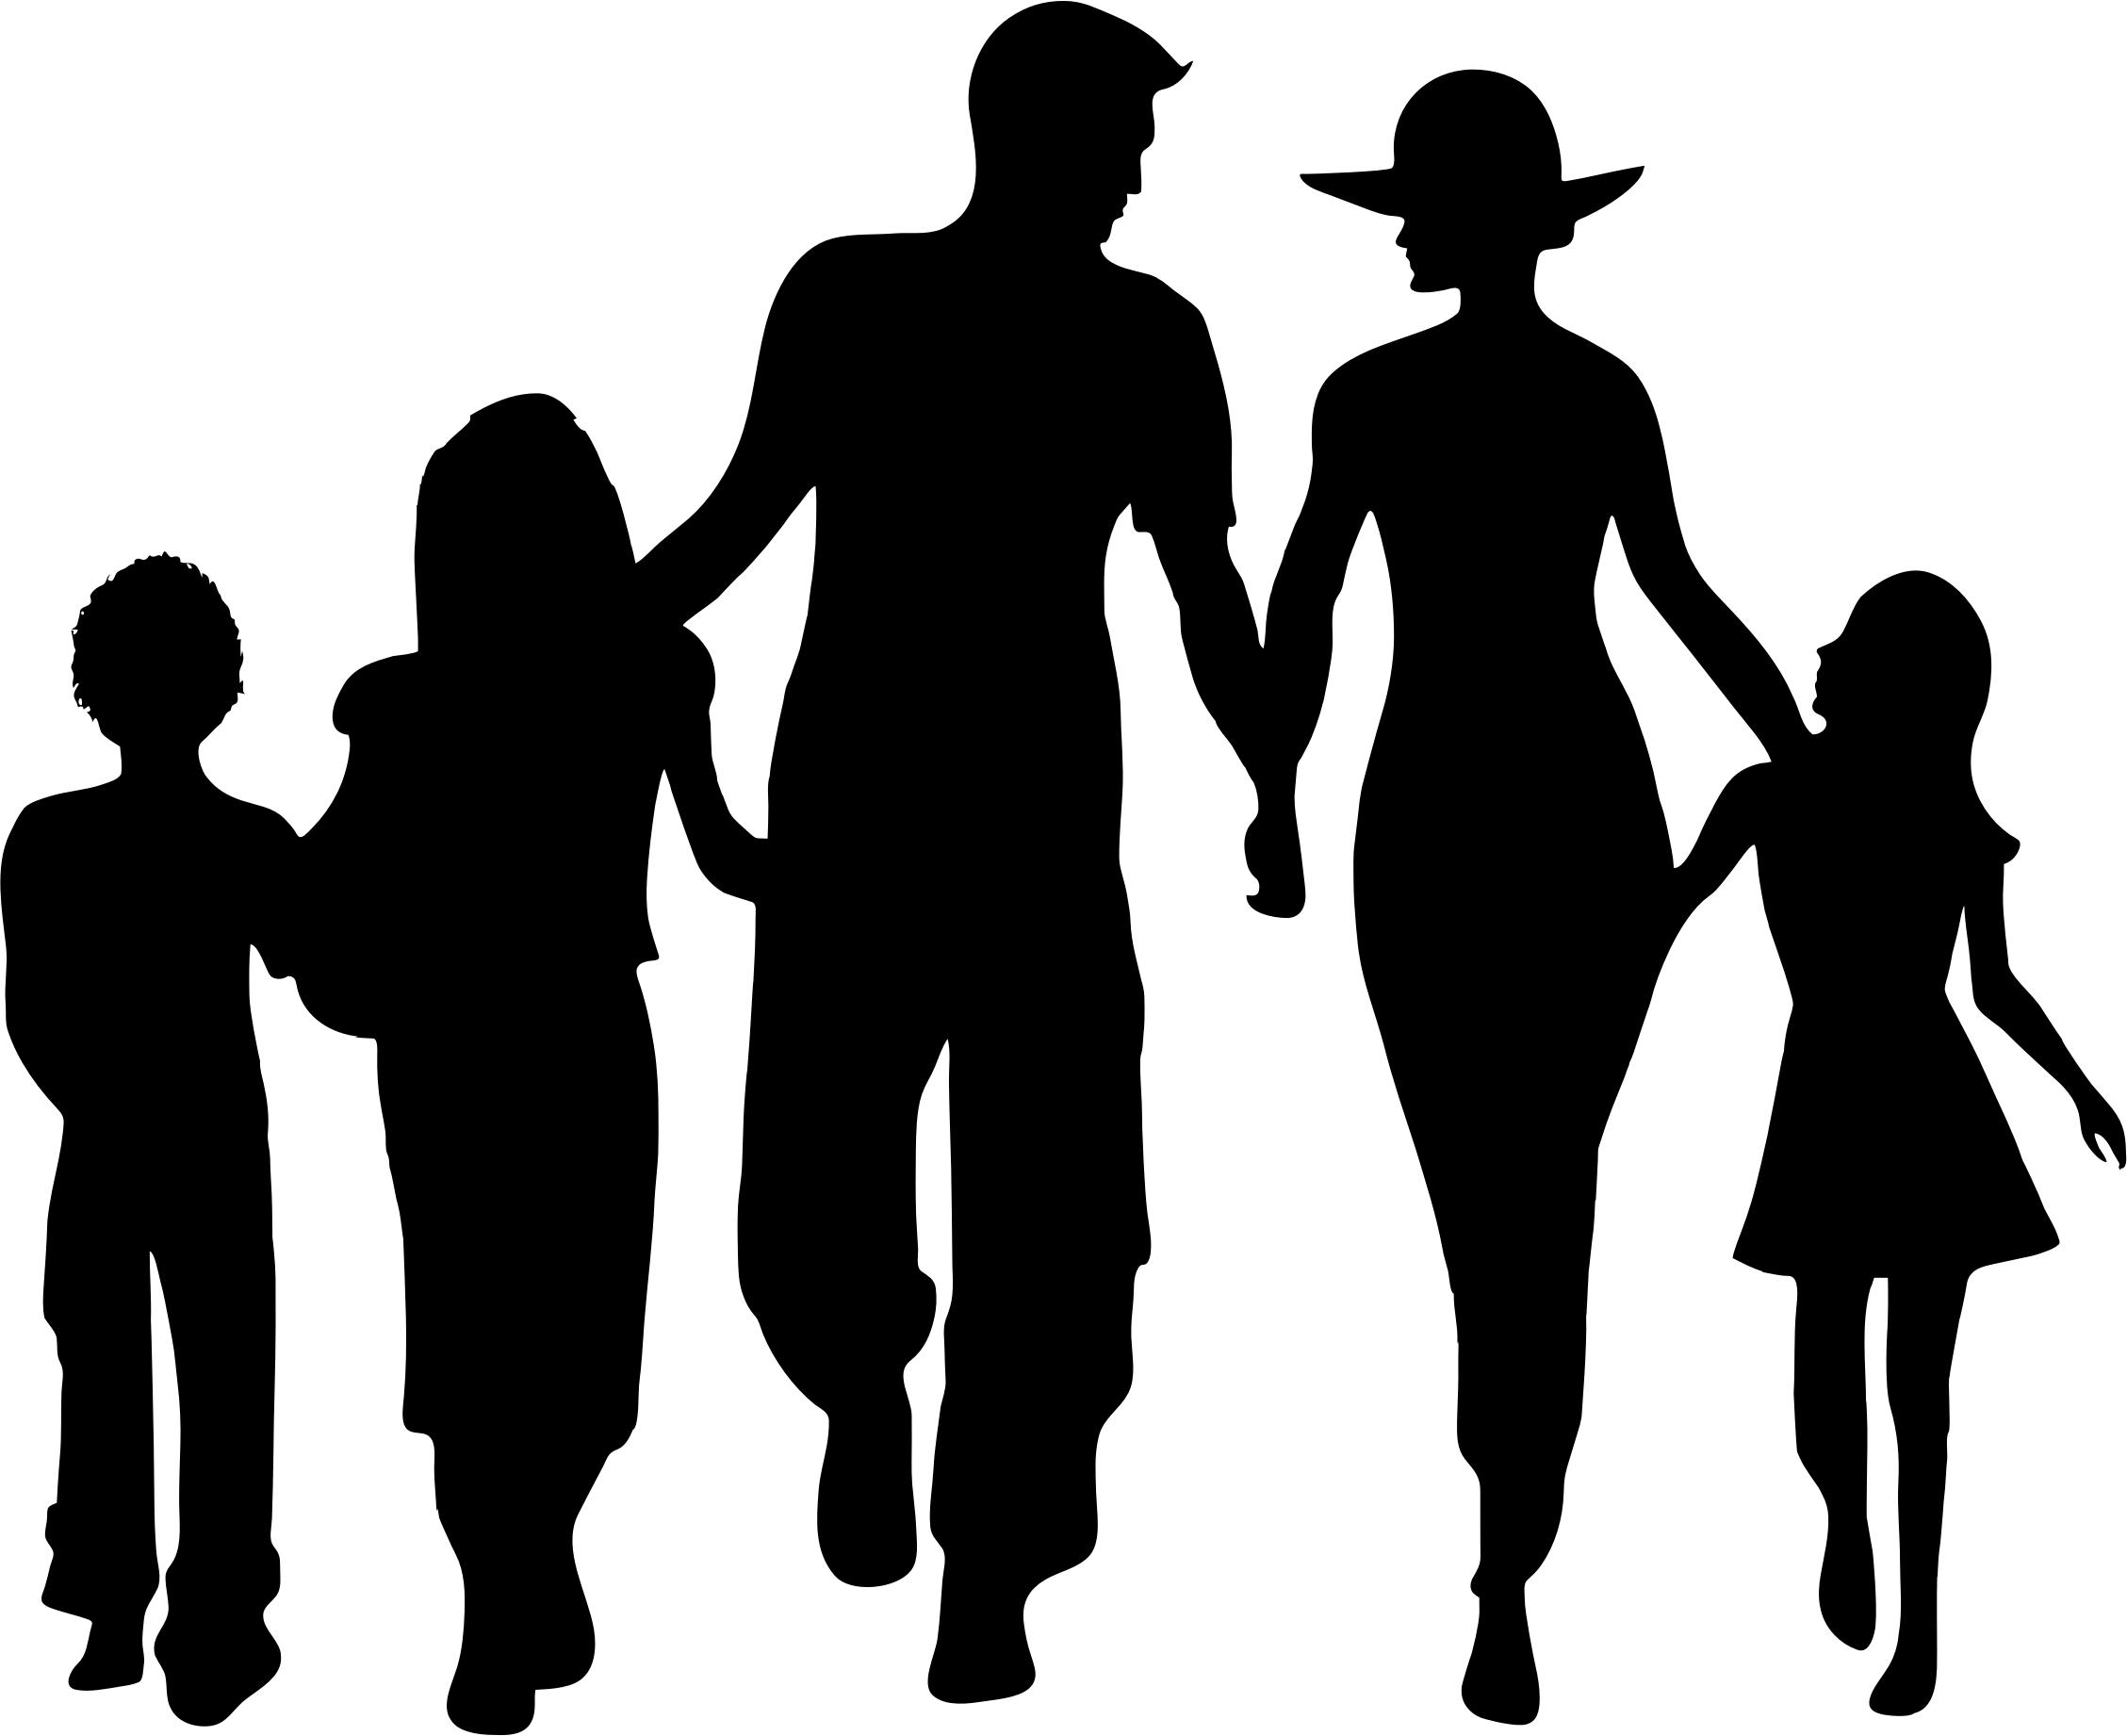 Family Silhouette - Family Picture, Transparent background PNG HD thumbnail